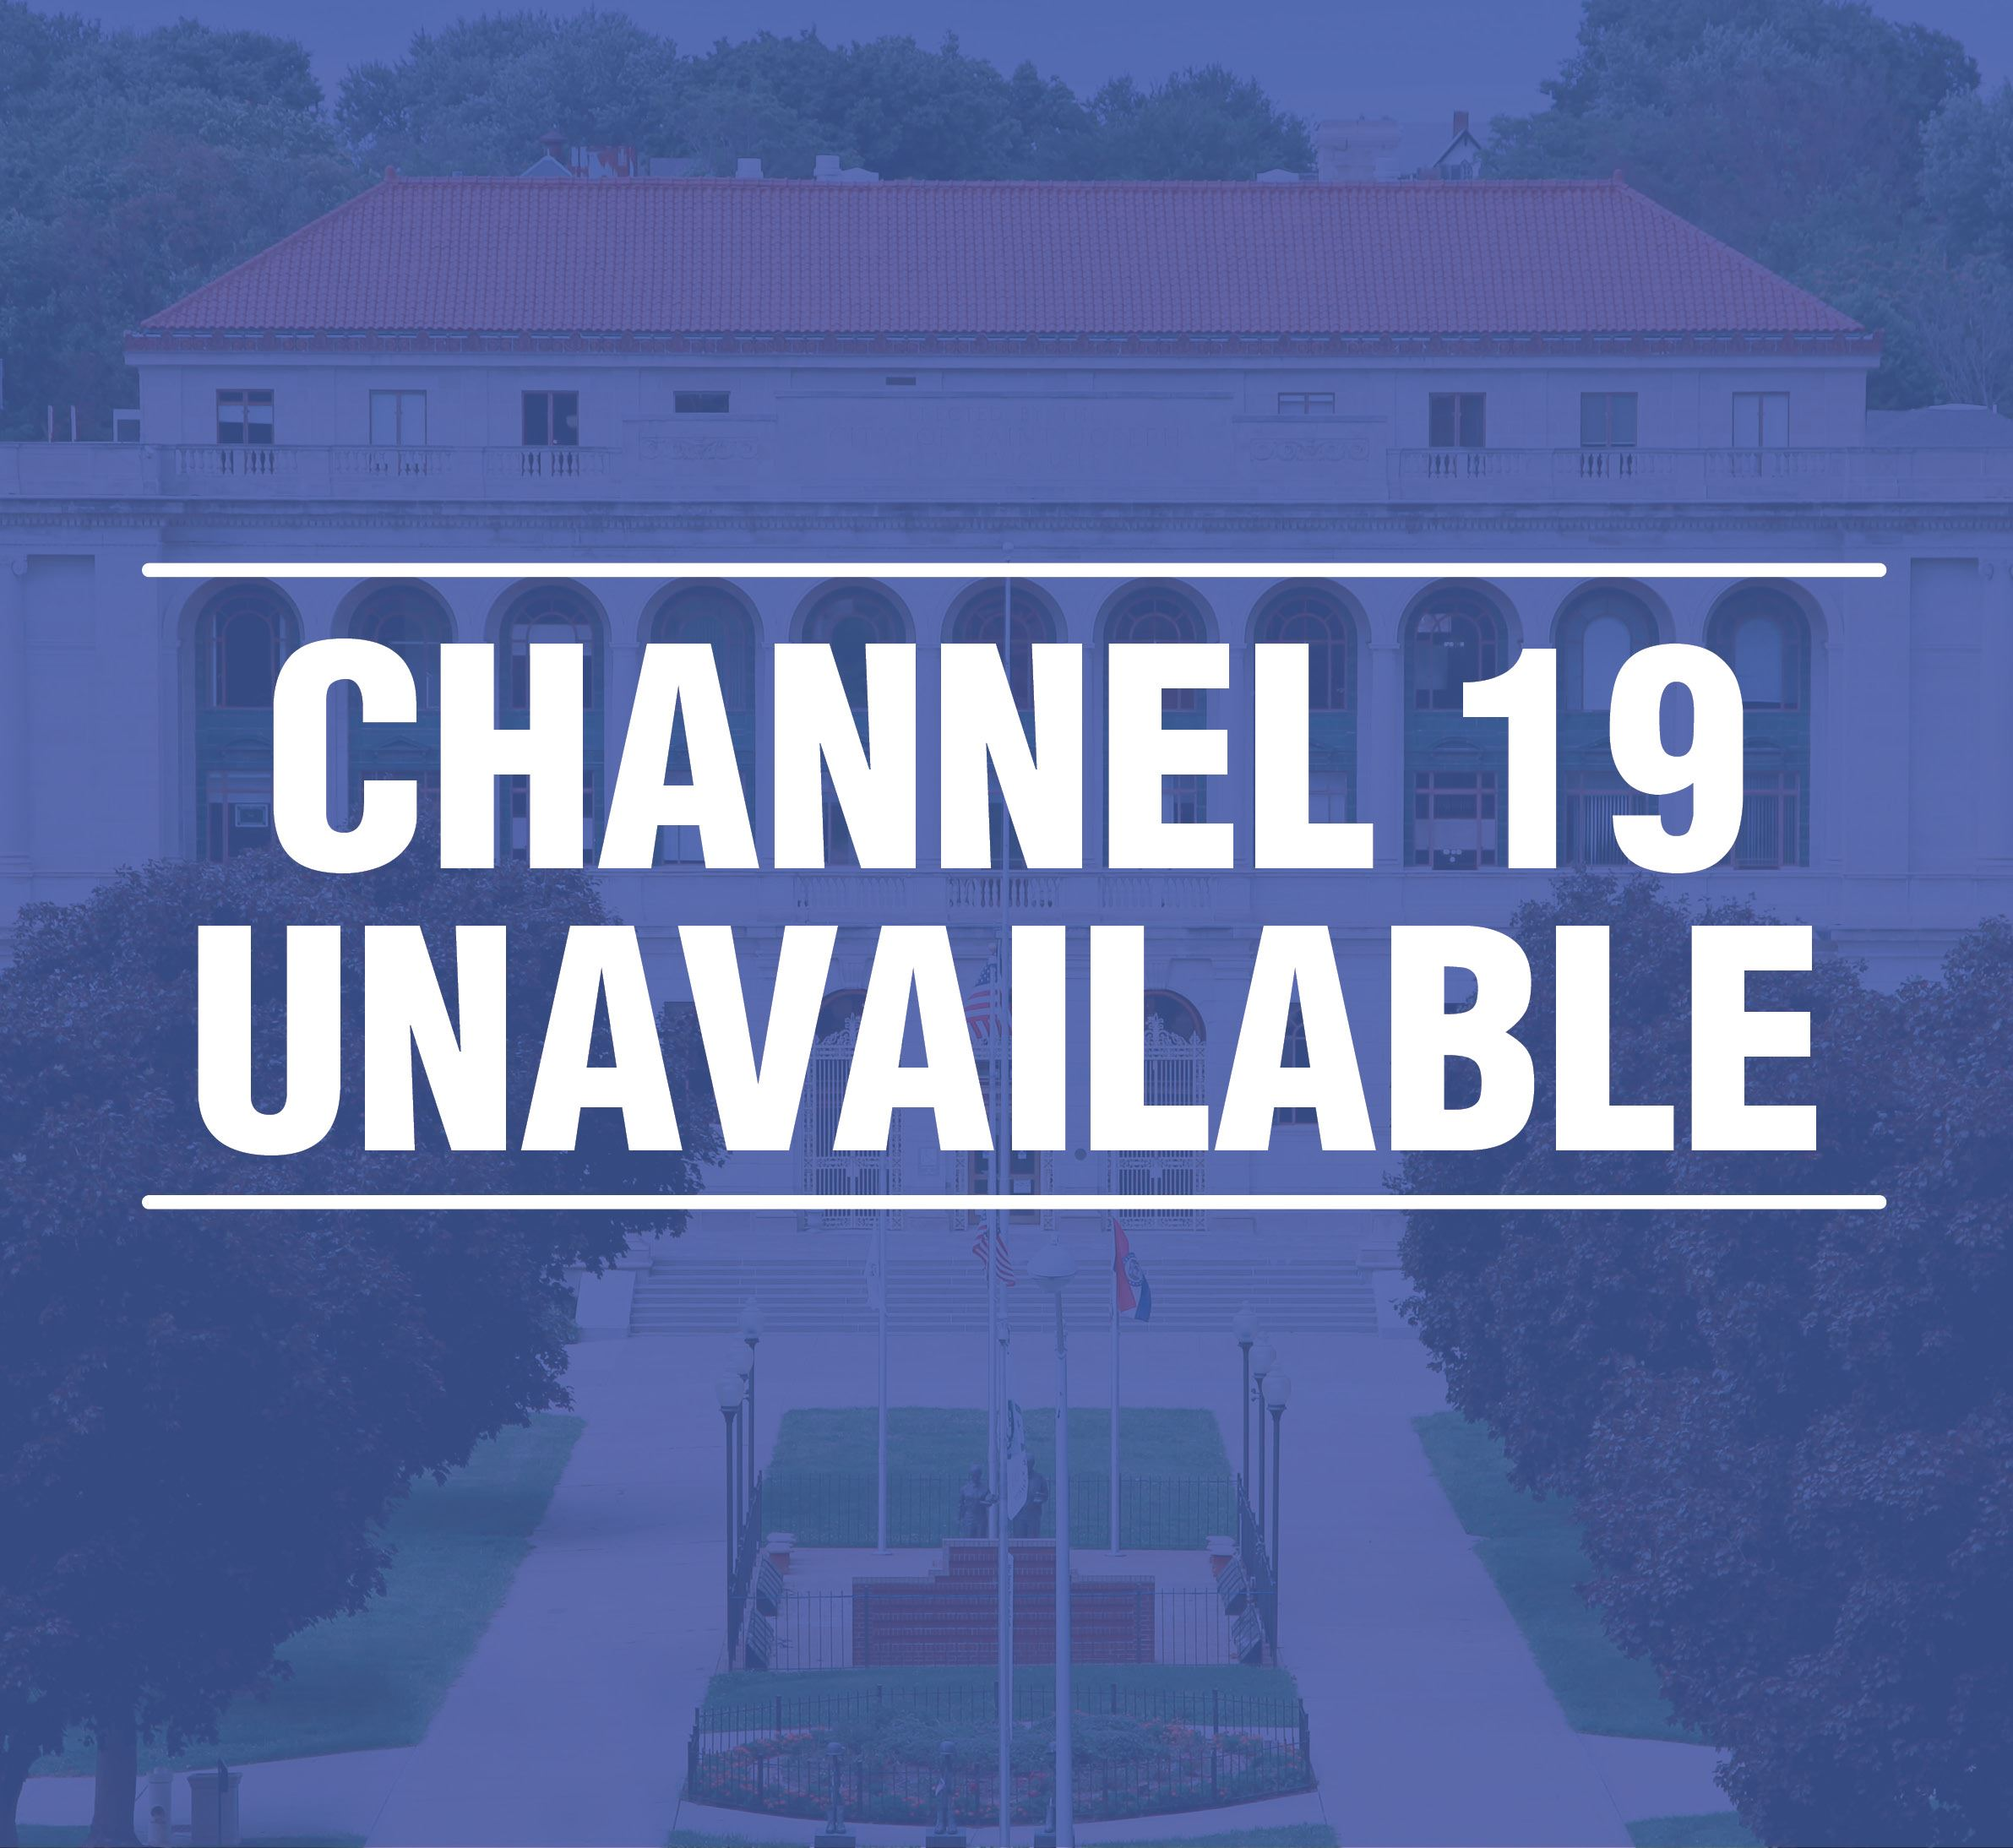 Channel 19 Unavailable